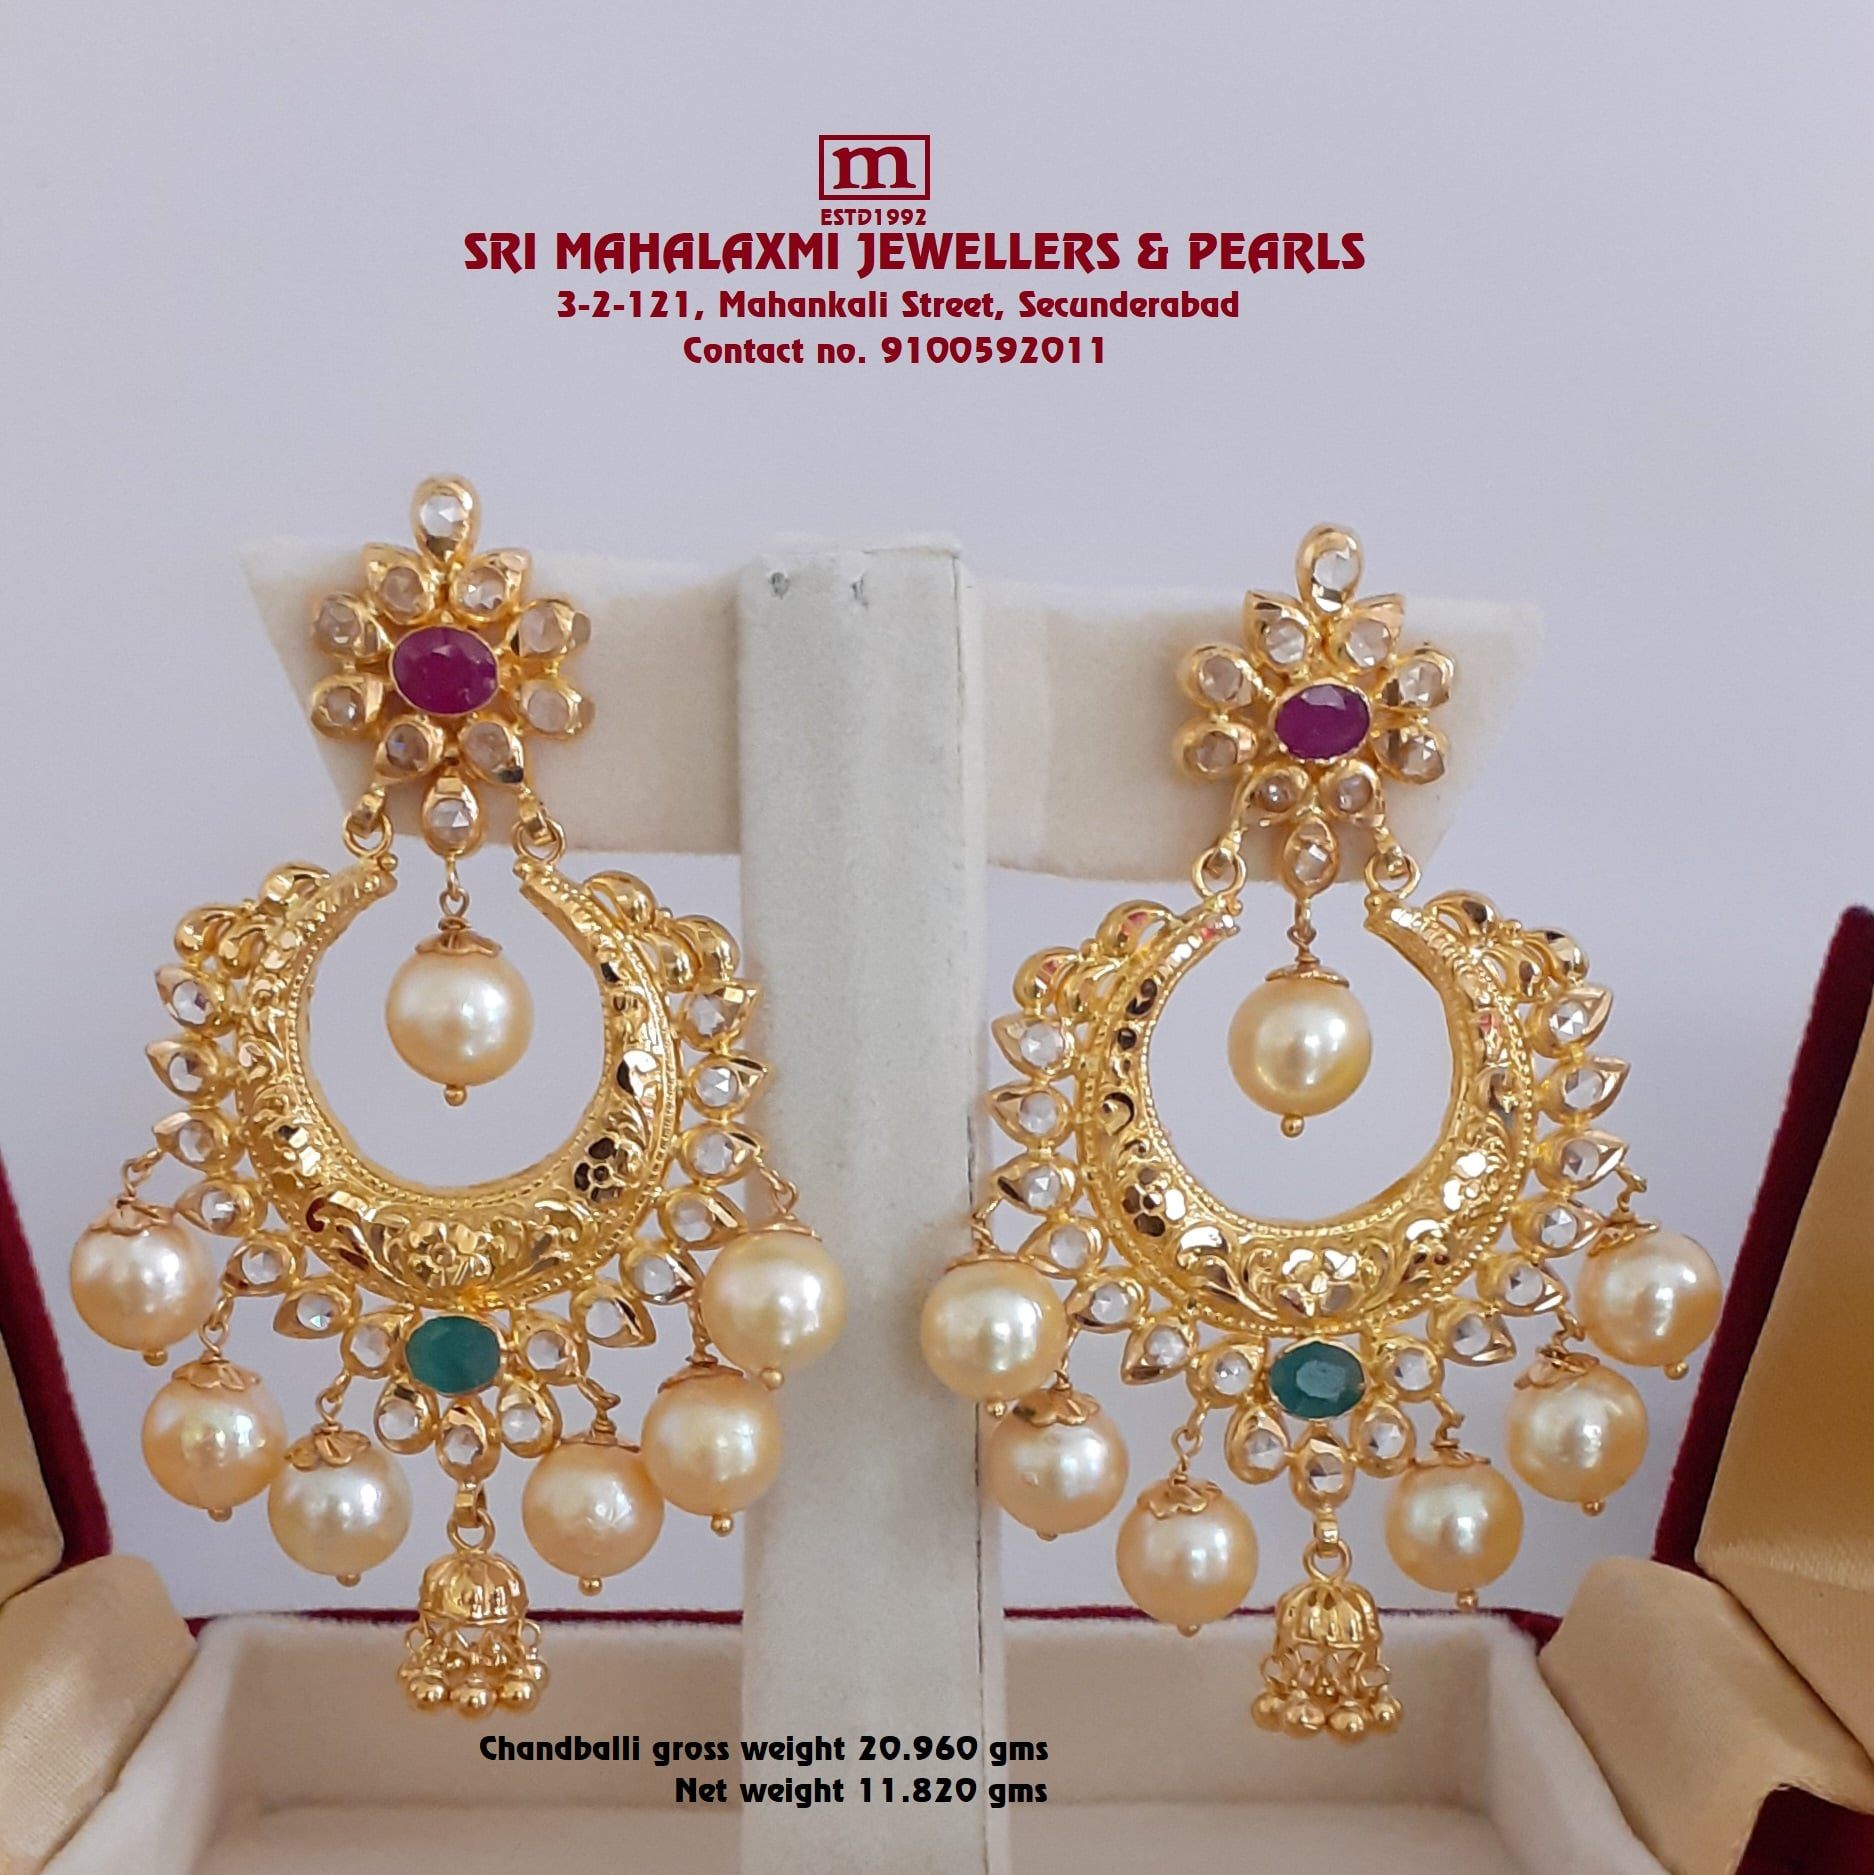 Presenting here is Light Weight Bridal Set`s Mango Long haram with matching Choker Necklace and Chandballi Earring Studded with Semi uncuts Stones  Ruby Emerald ans South Sea Pearls VISIT OUR SHOWROOM For Full Range of Collection Please call whatsapp       VIDEO CALL on no. 9100592011   .     2020-12-26